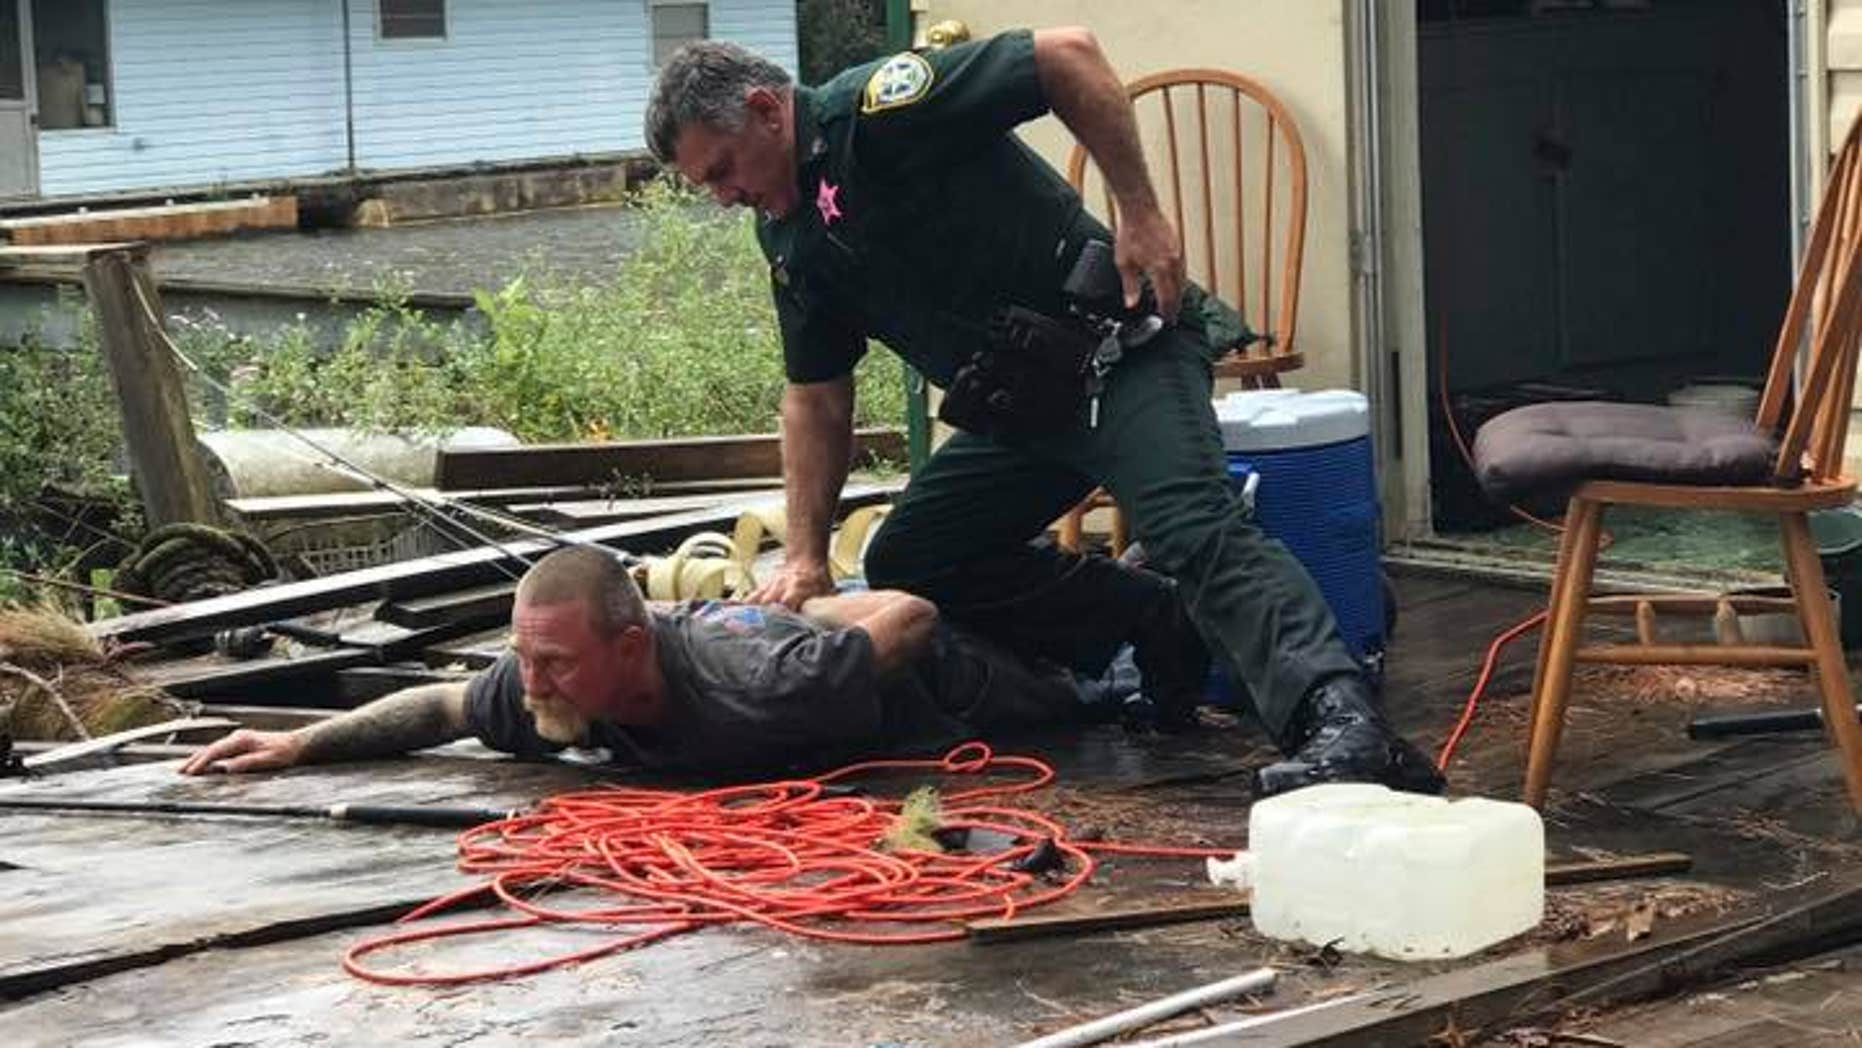 Kevin Wyatt, wanted on five warrants including sex trafficking, was captured by police after being discovered hiding on a houseboat.